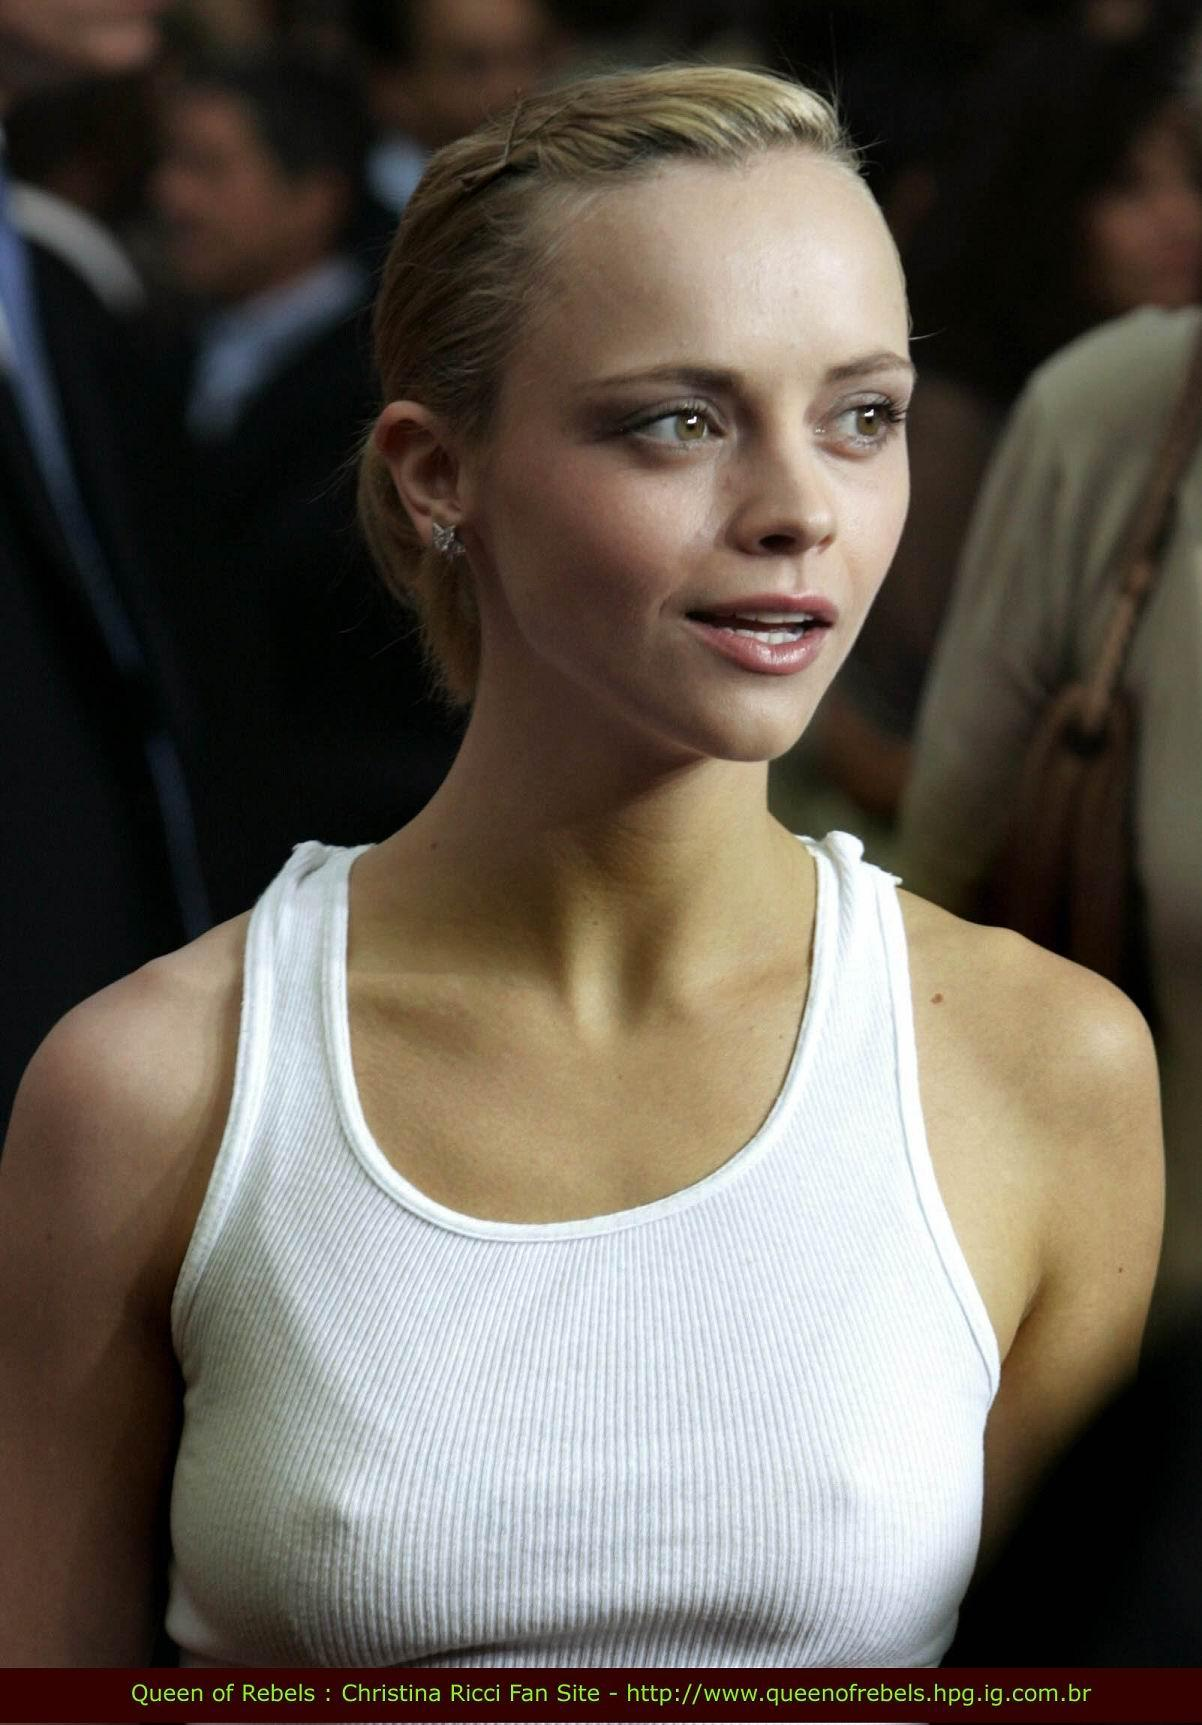 Christina ricci in after life - 1 4